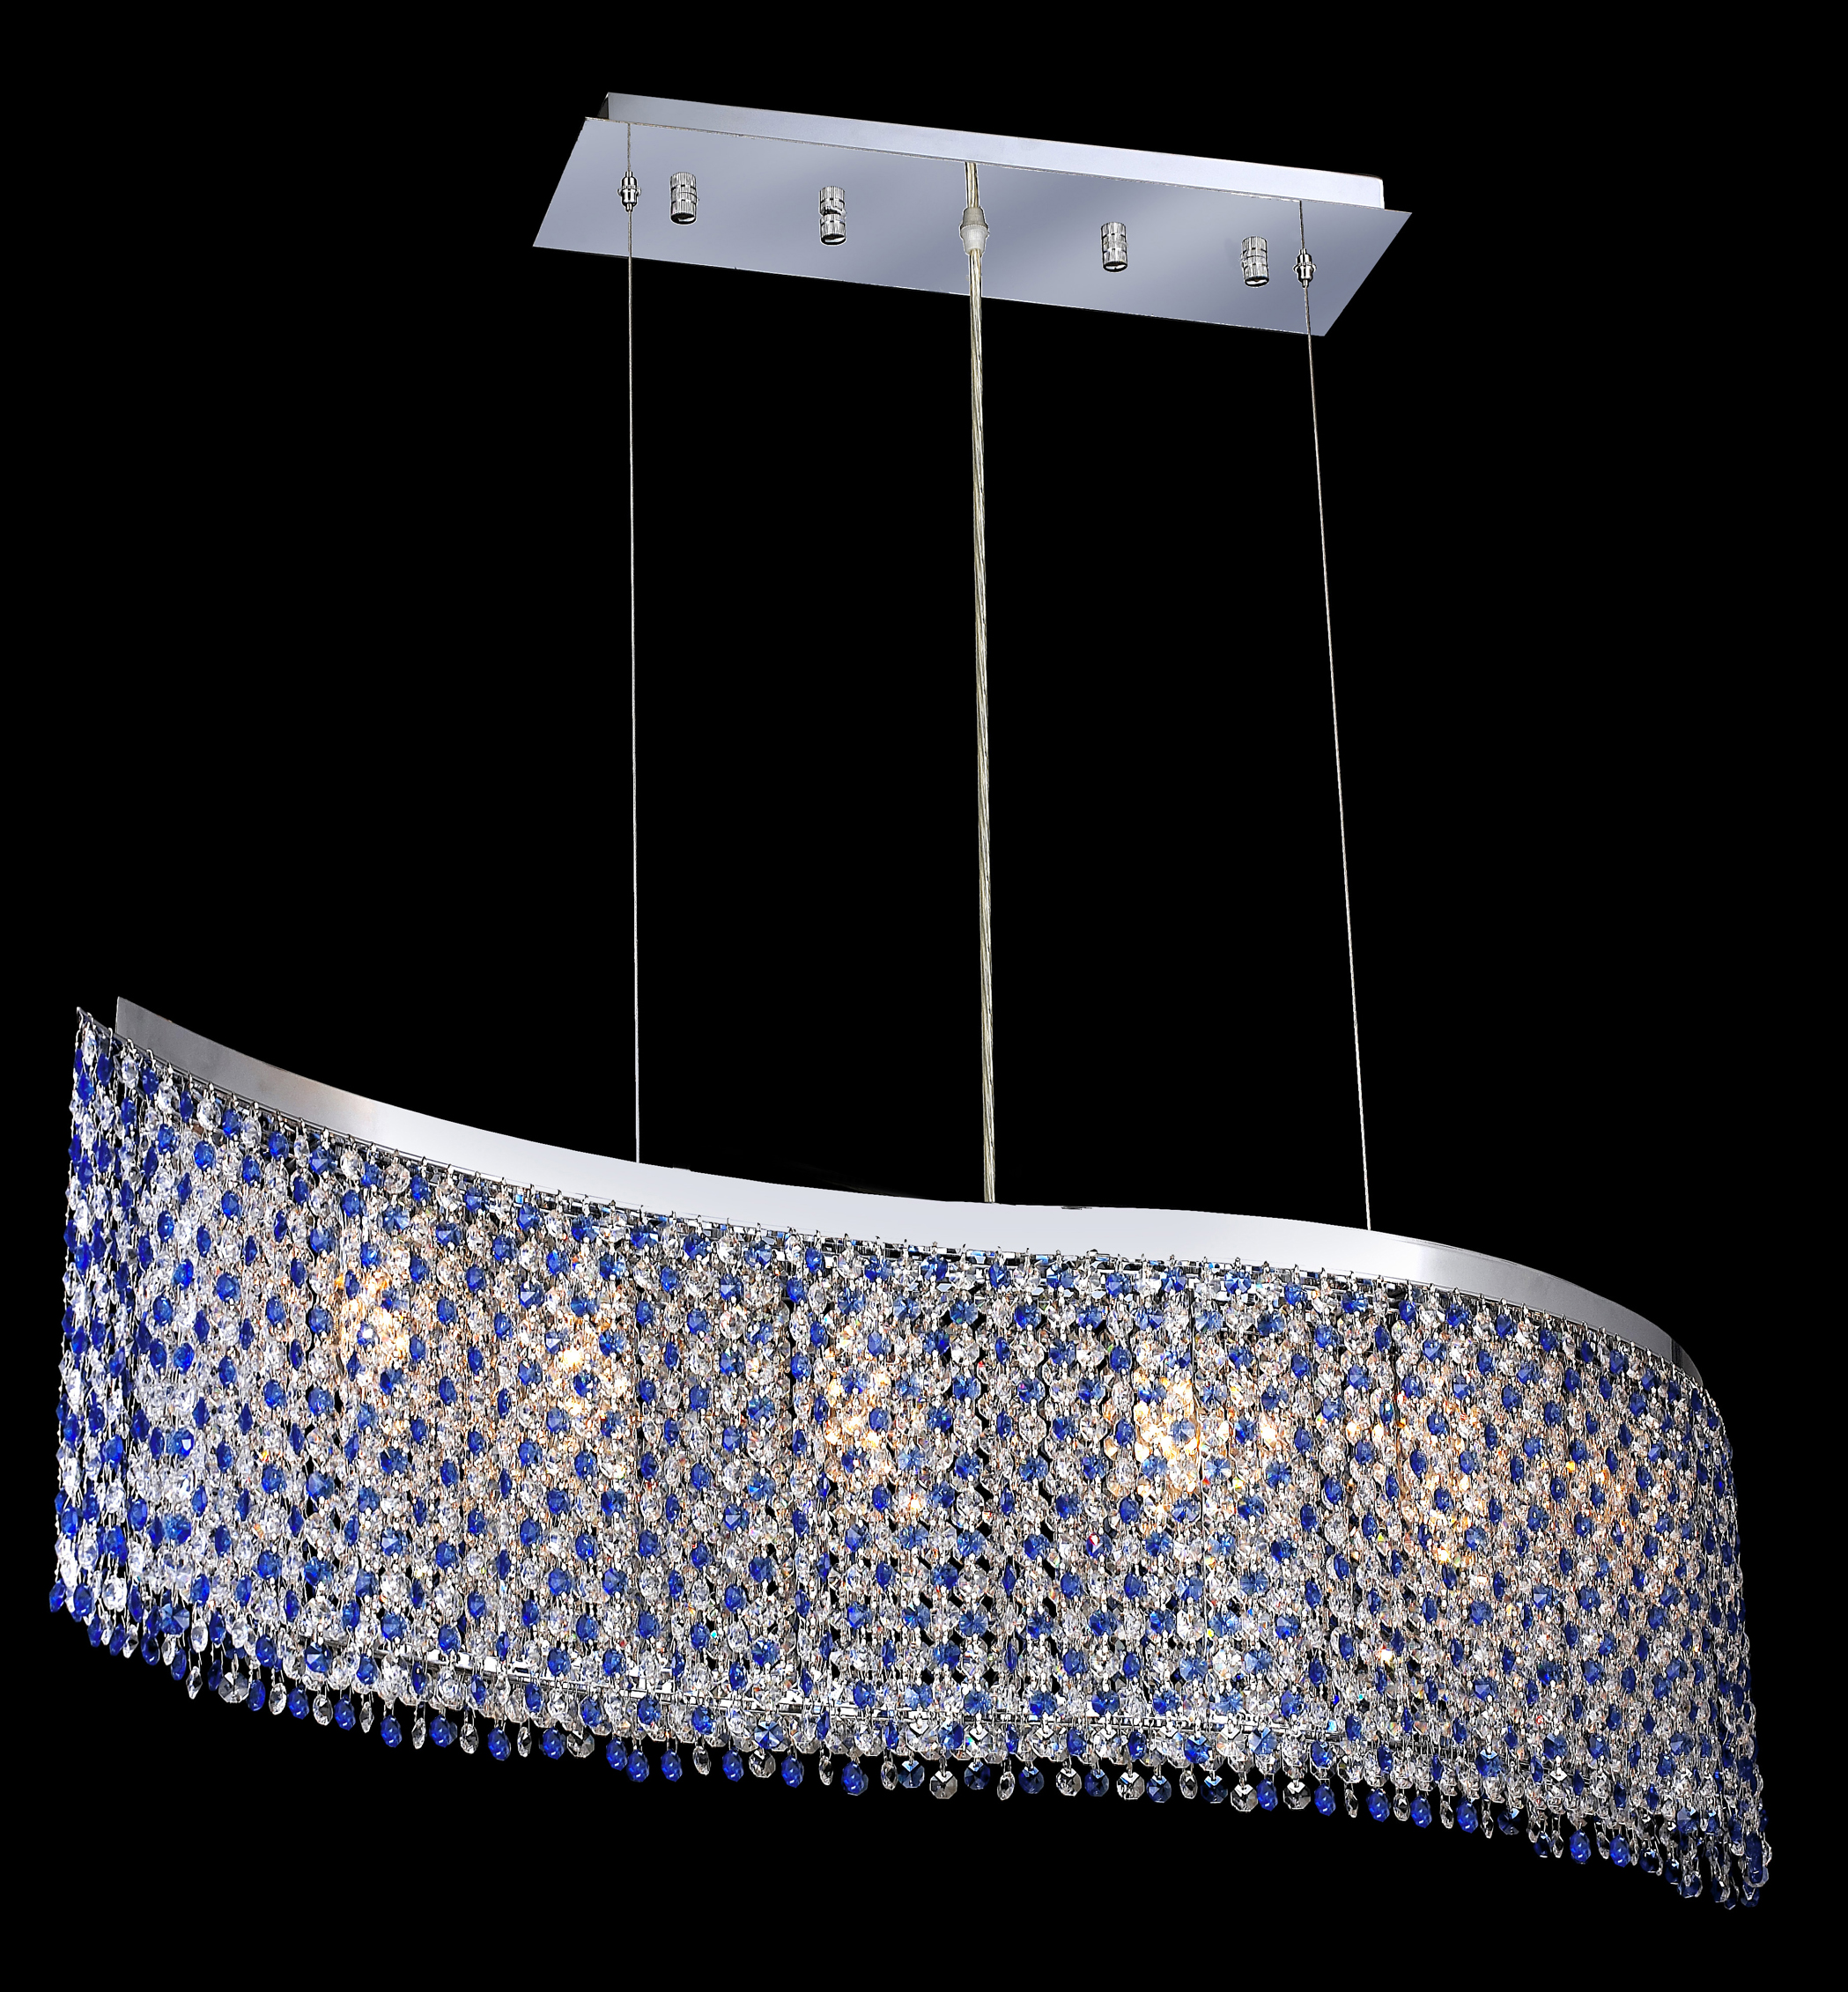 Royal dining room furniture - Elegant Lighting 1296d32c Sa Ss Moda Strass Swarovski